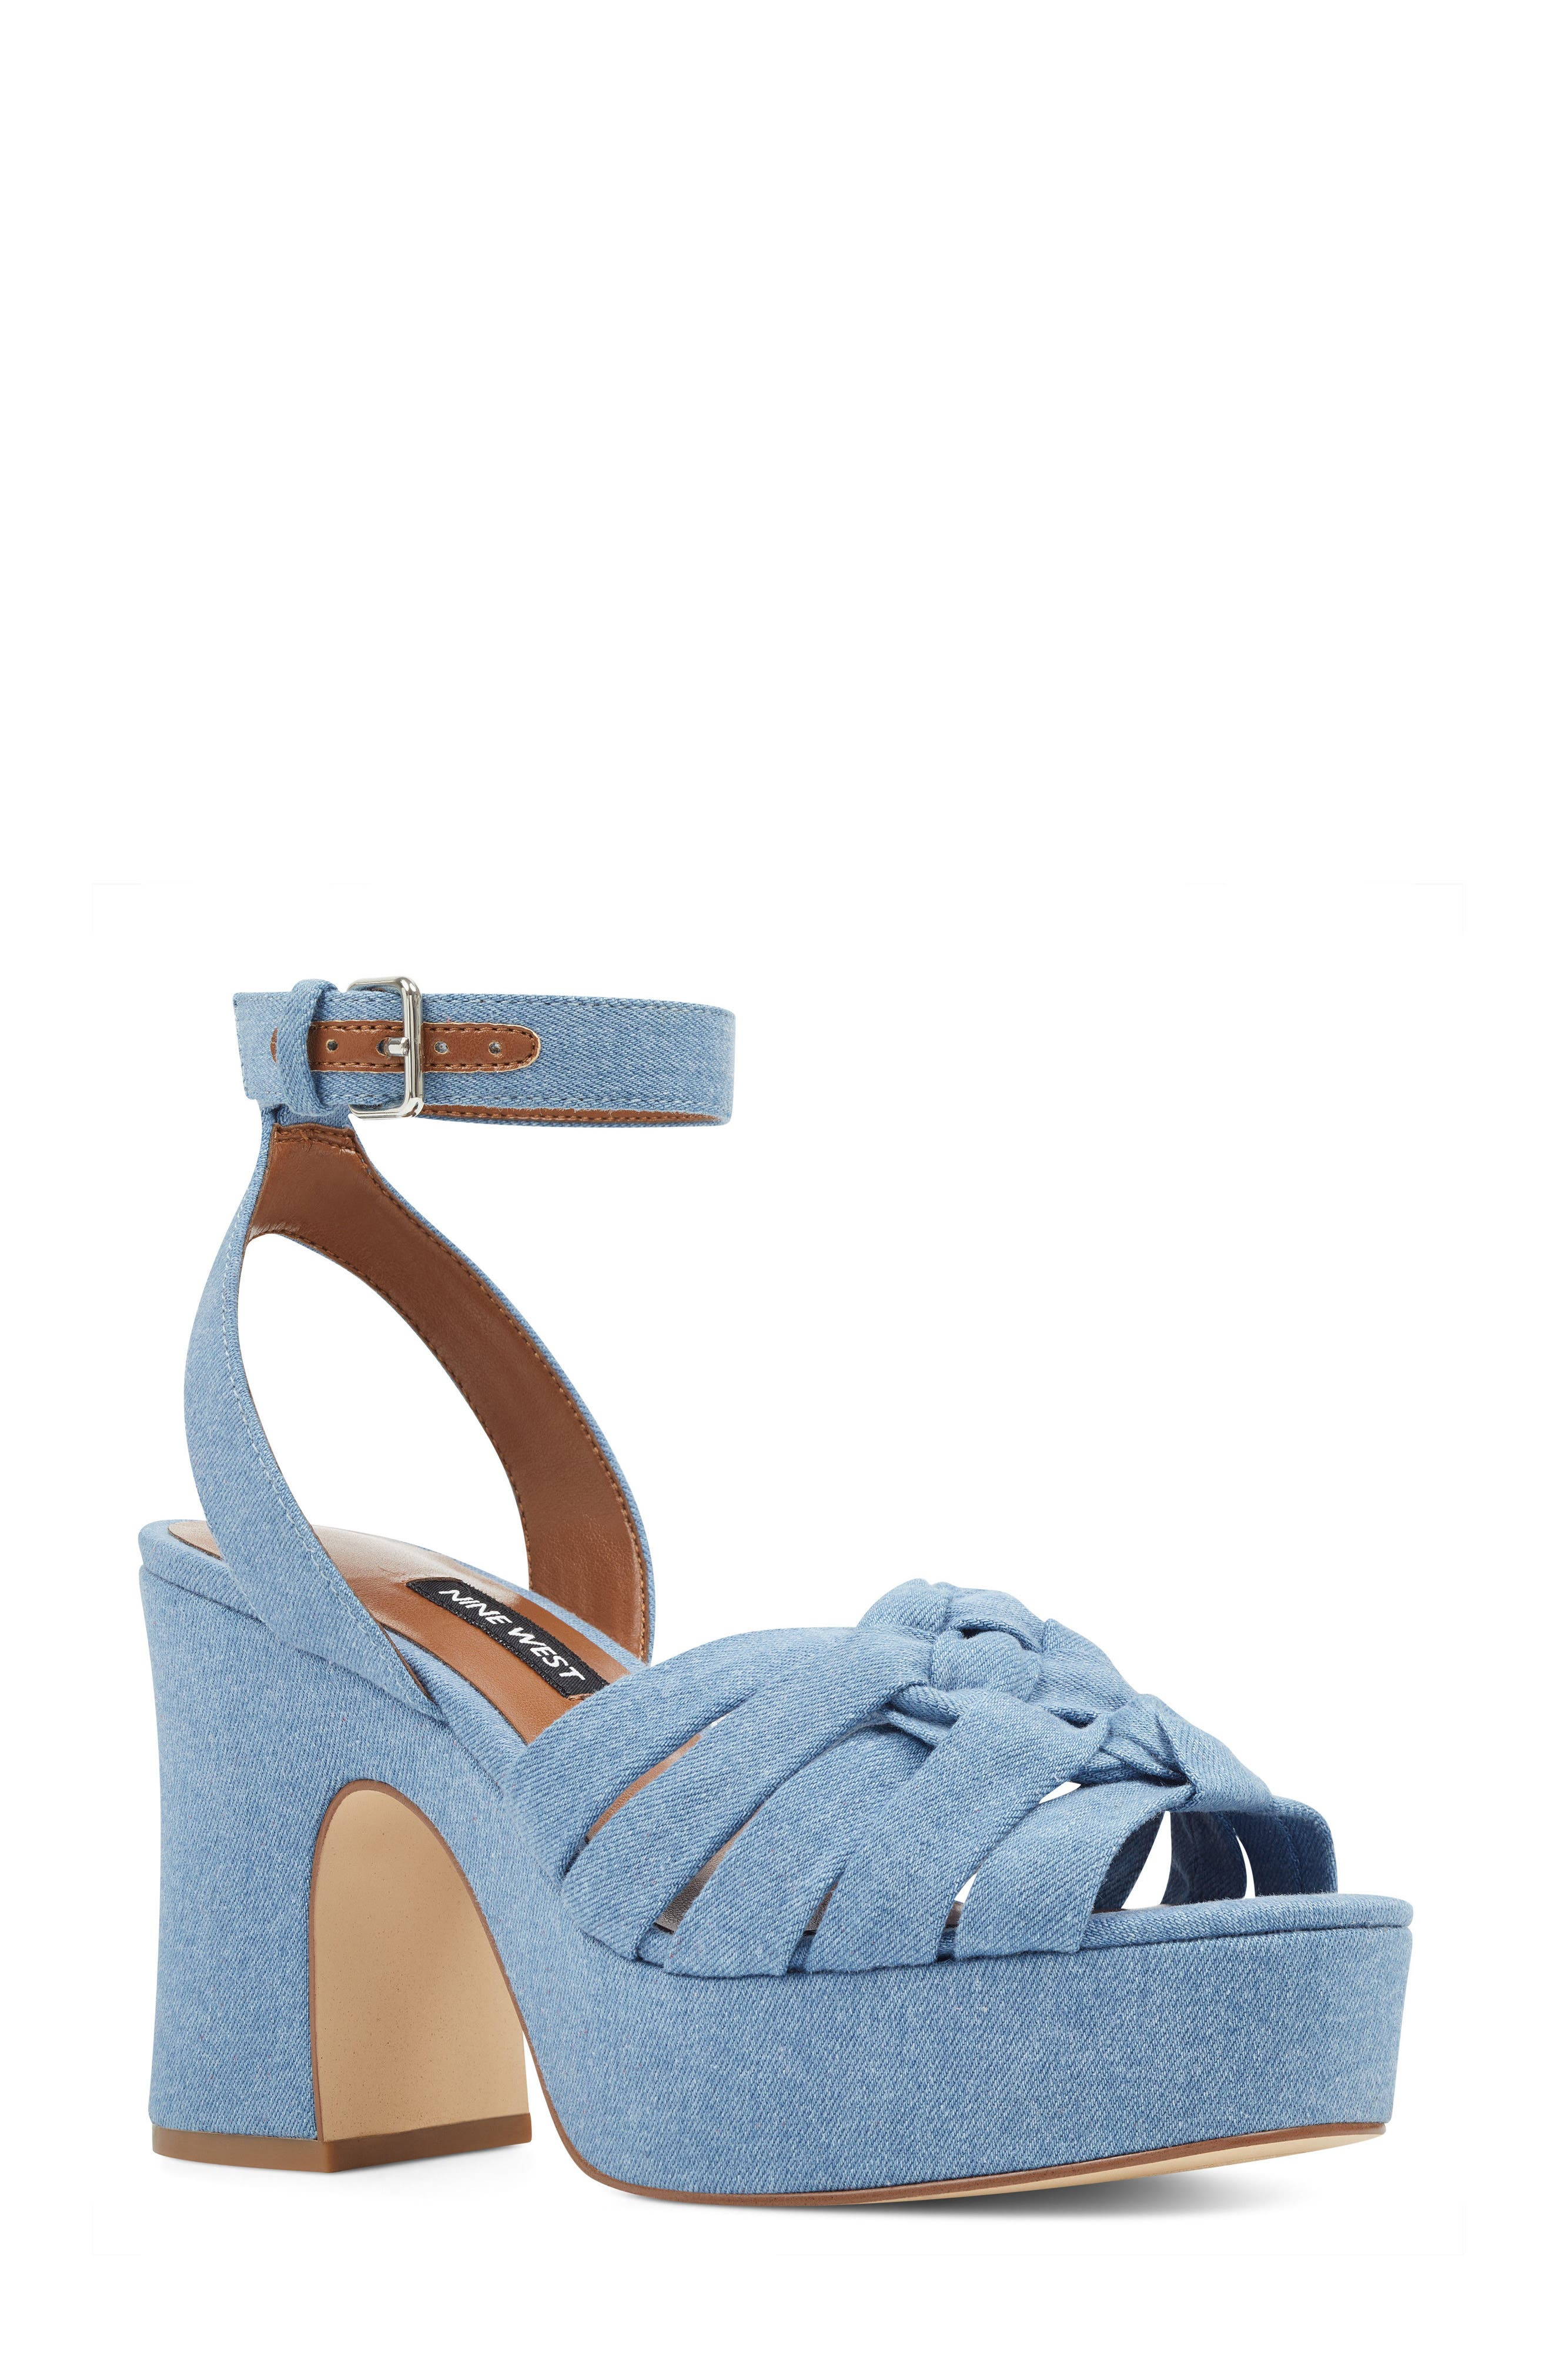 Fetuchini Platform Sandal,                             Main thumbnail 1, color,                             Light Blue Denim